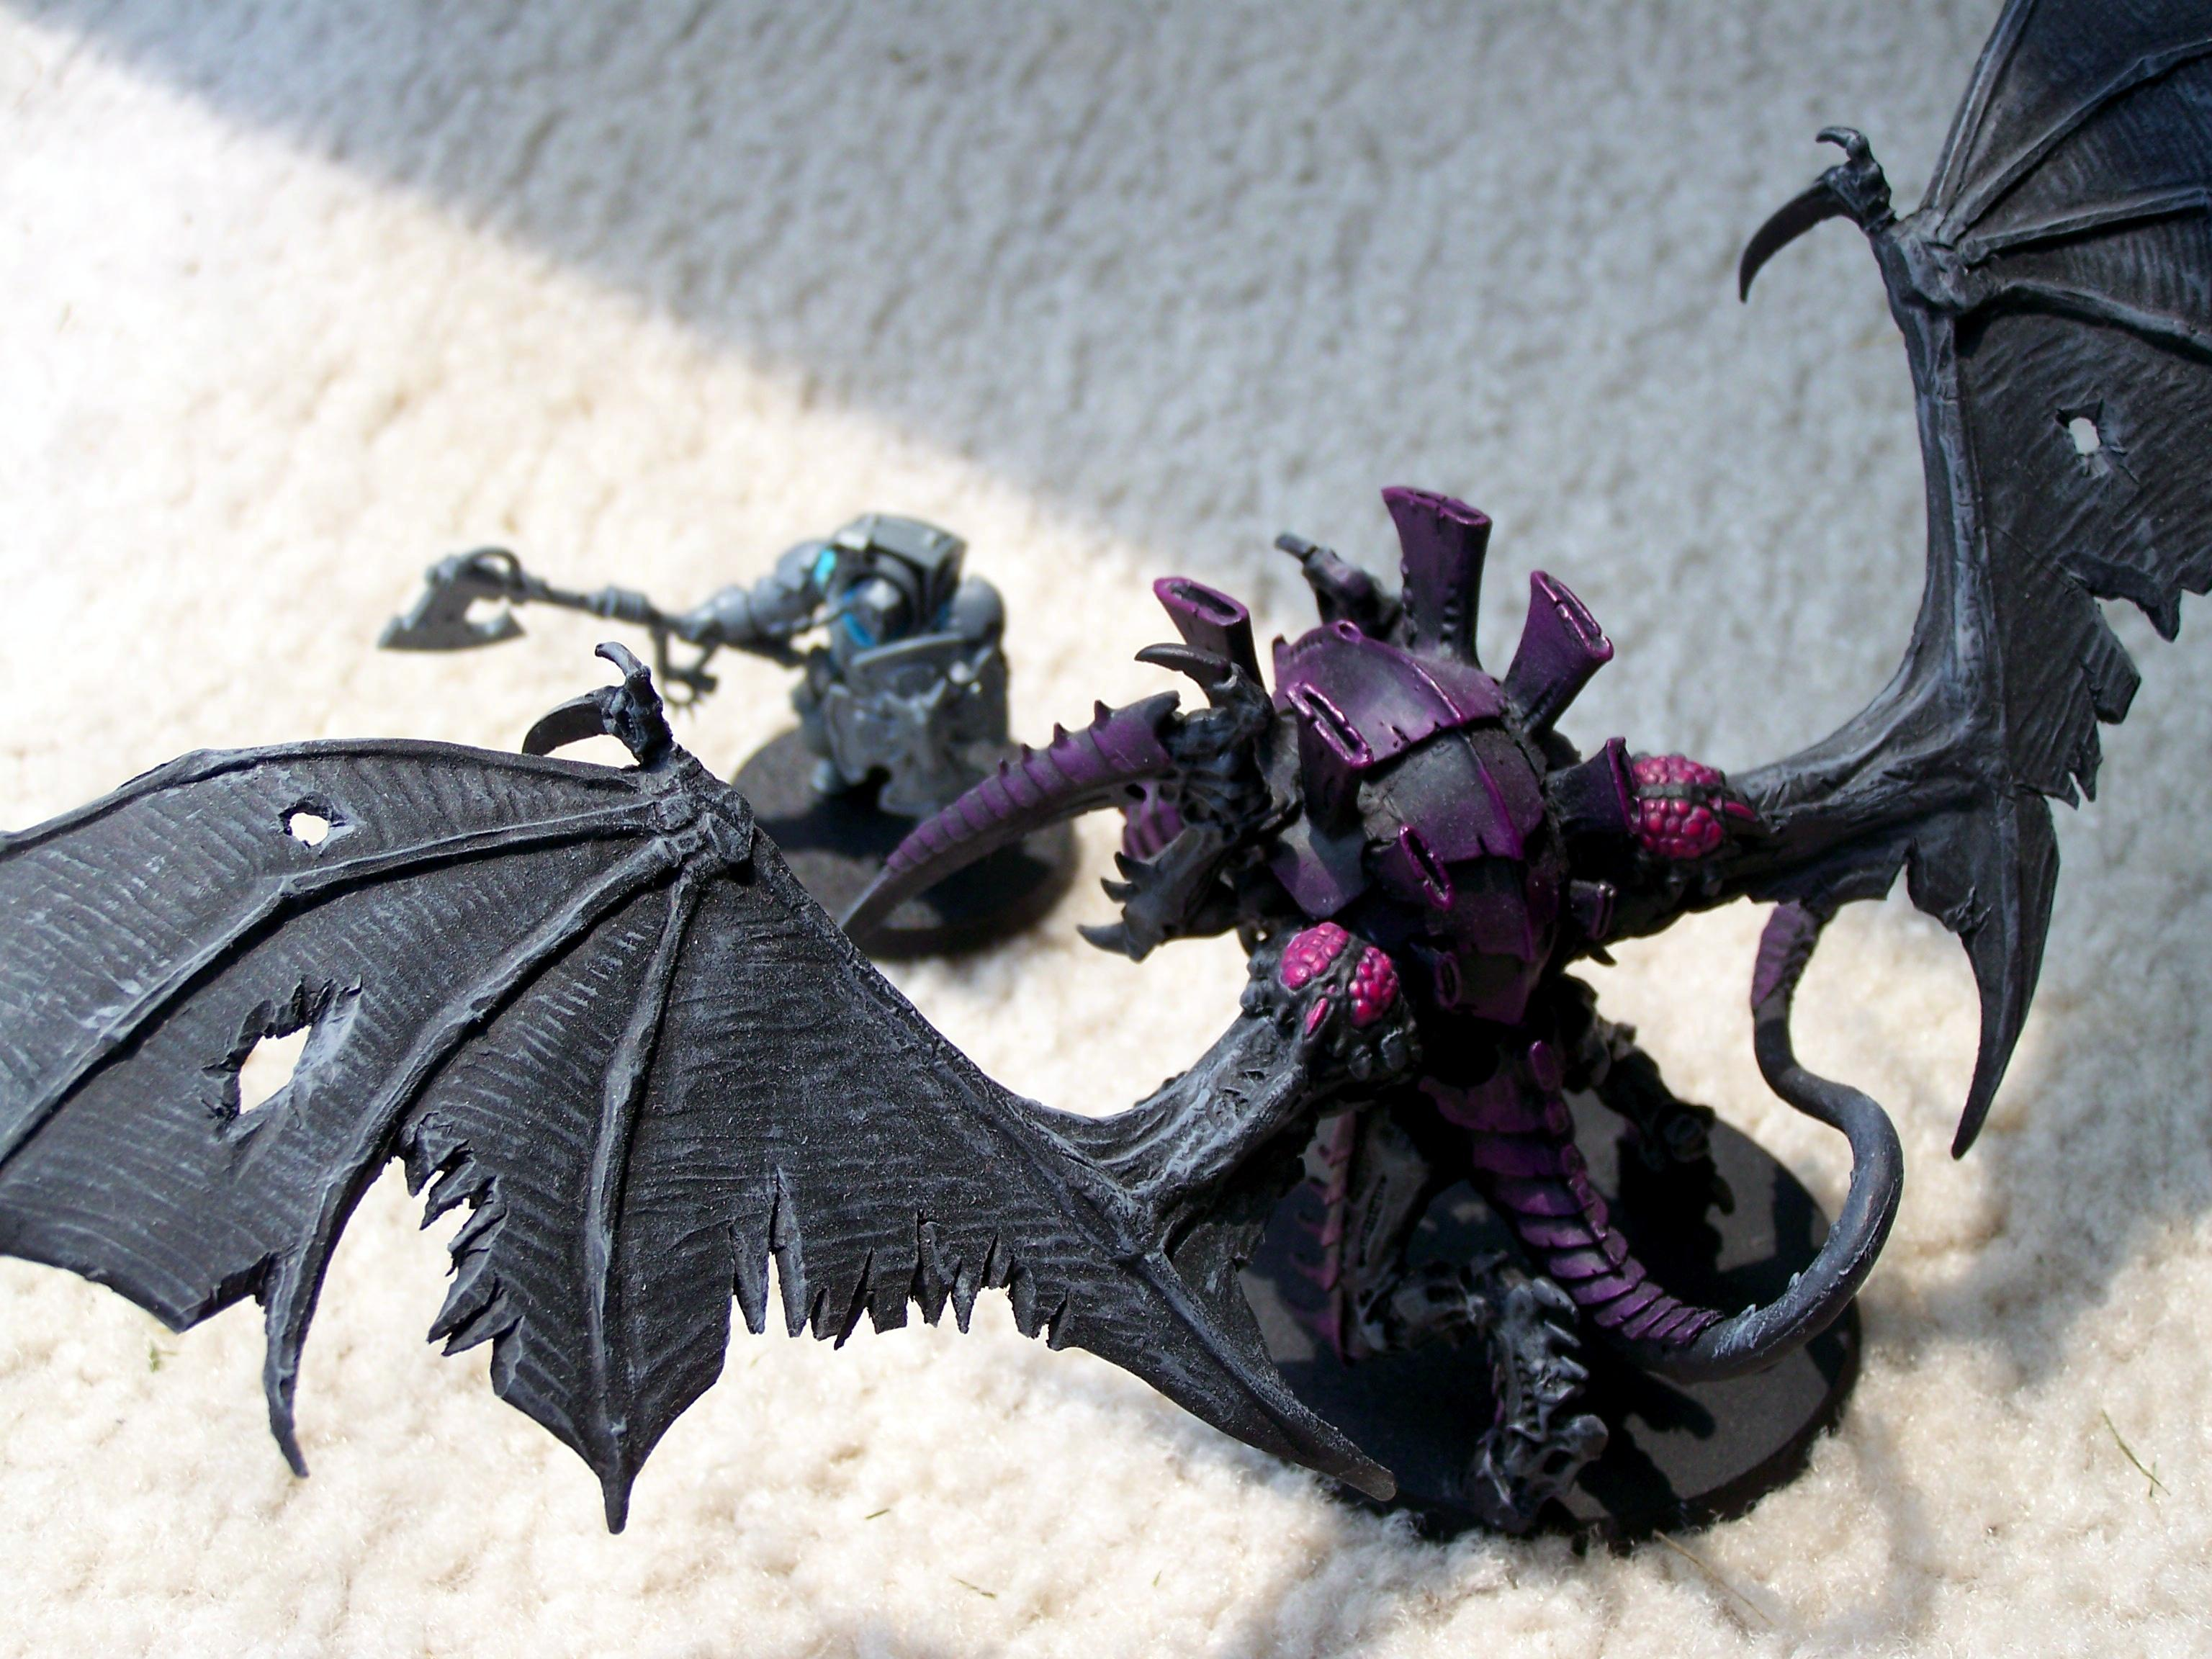 Axe, Flying, Hive Tyrant, Space Marines, Space Wolves, Terminator Armor, Tyranids, Winged, Wolf Guard